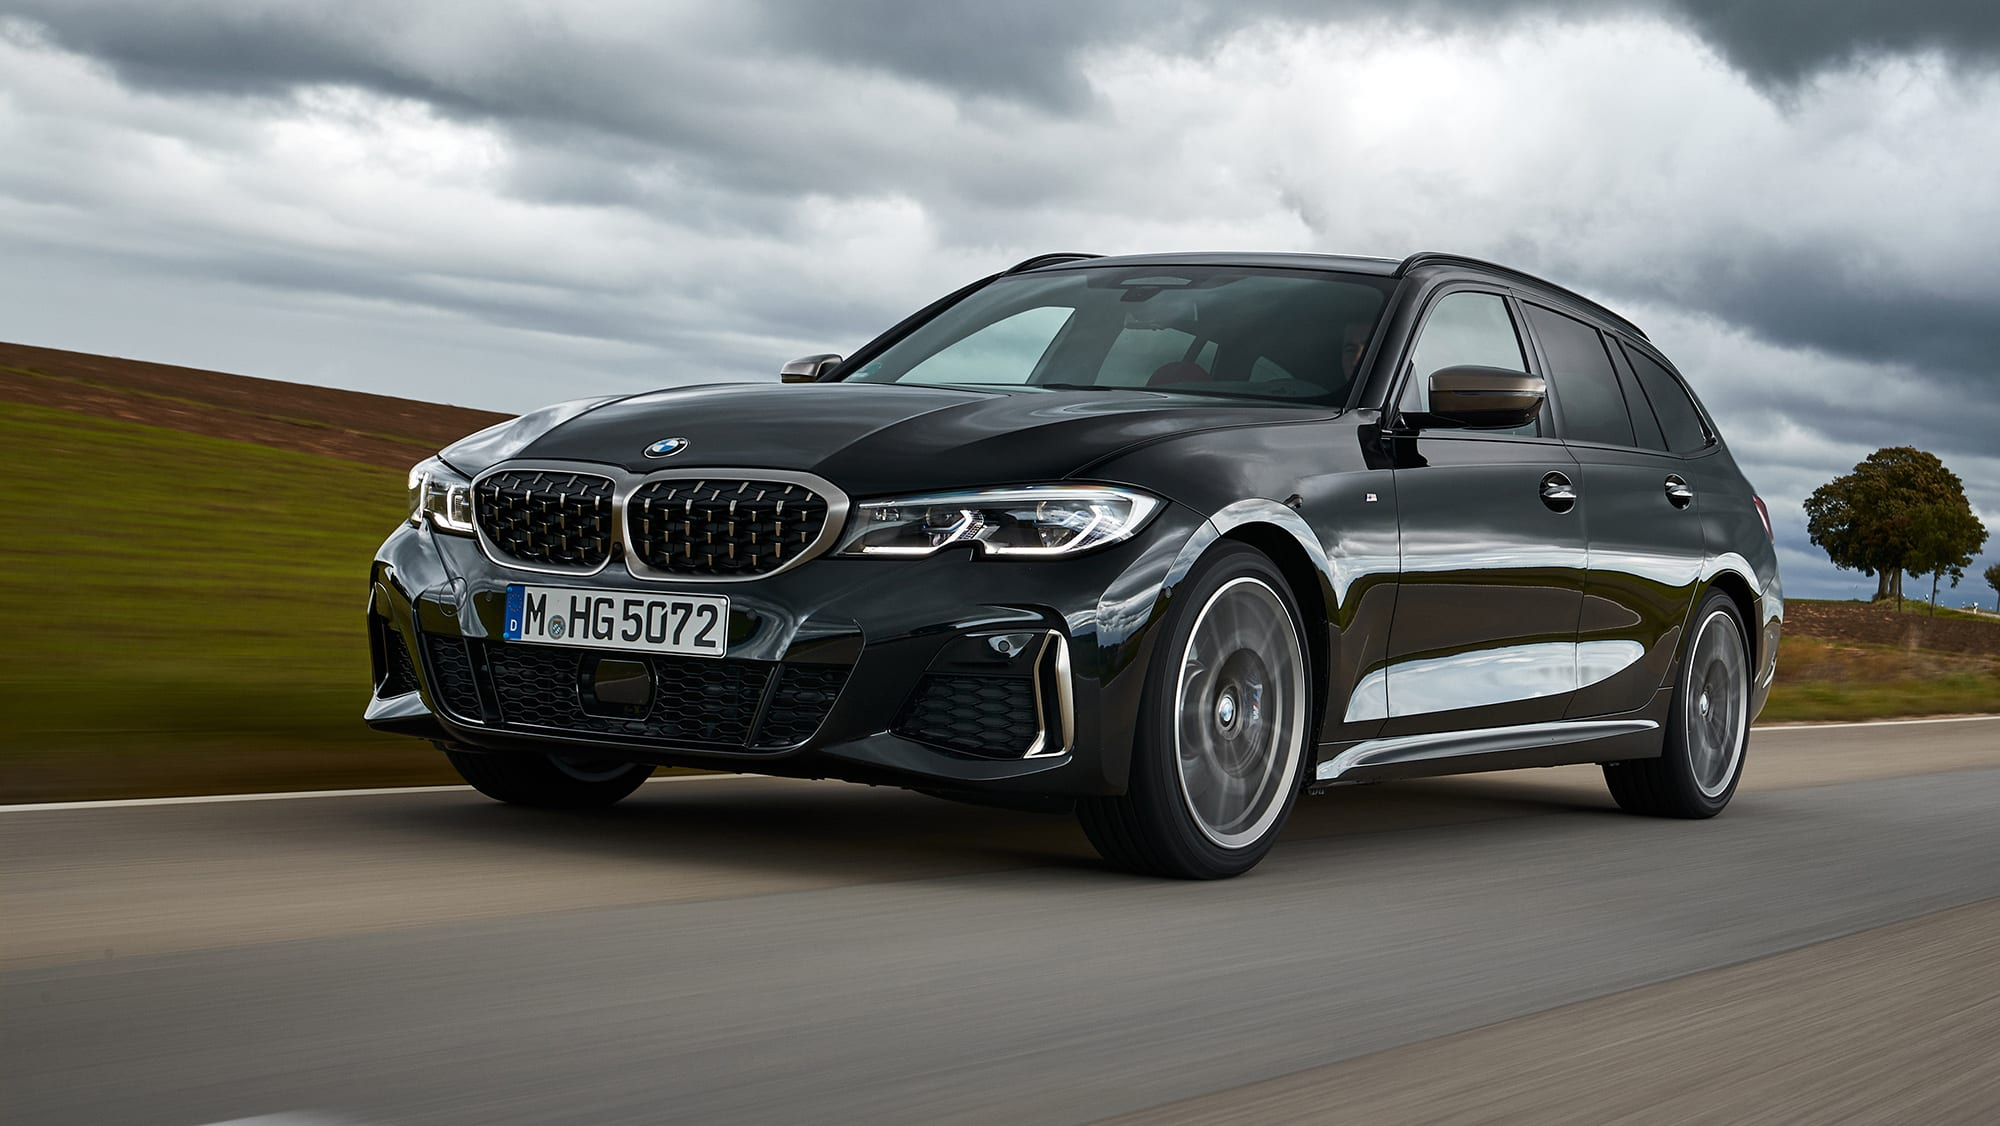 2020 Bmw M340i Xdrive Touring Launches In Europe Still Not For Oz Caradvice